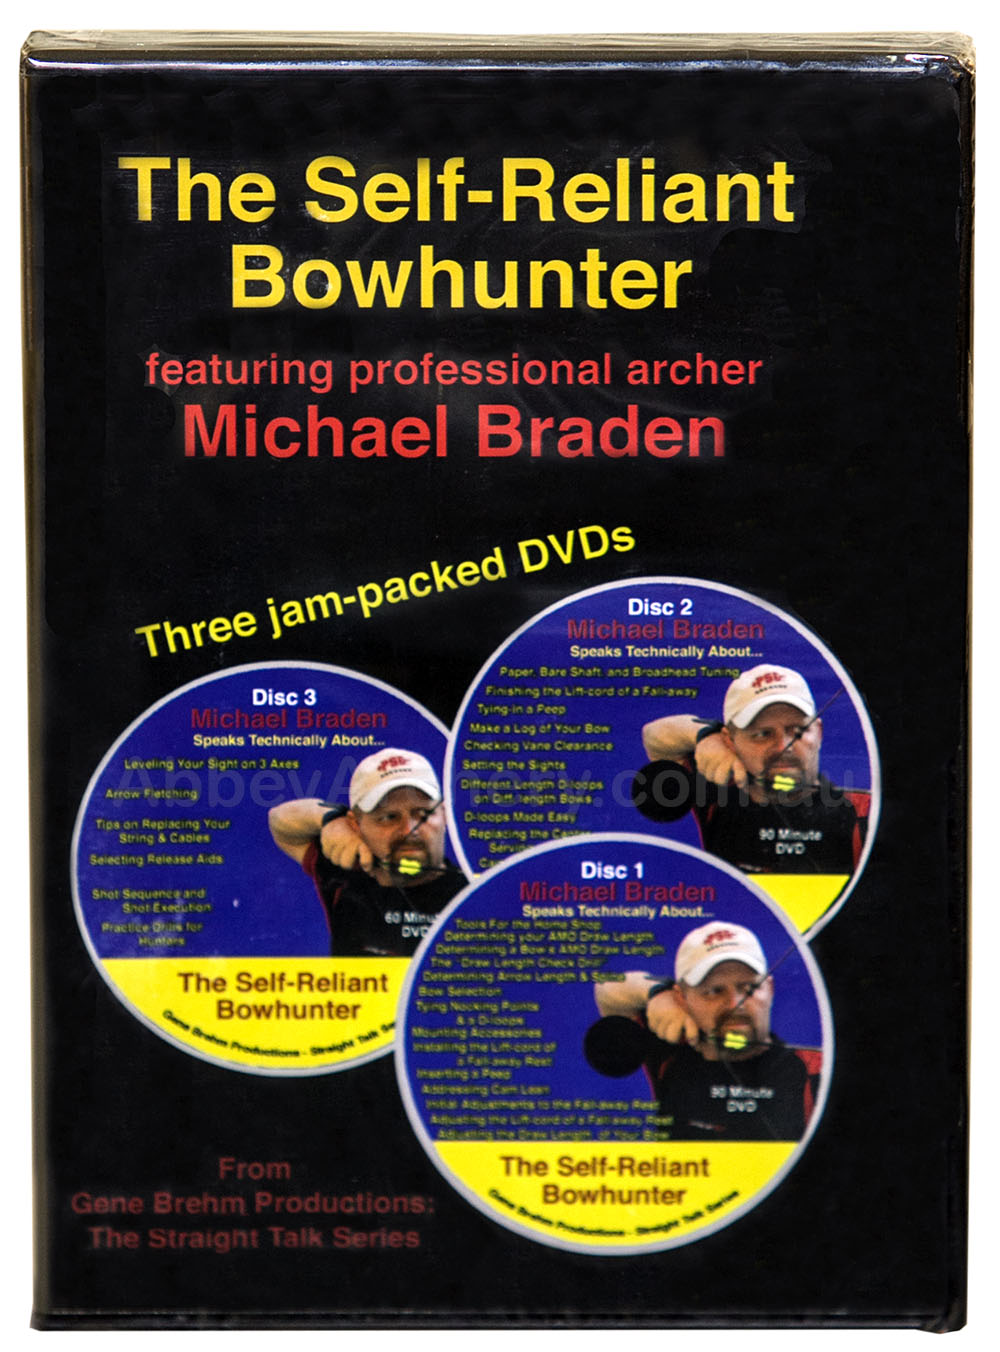 DVD The Self-Reliant Bowhunter by Michael Braden